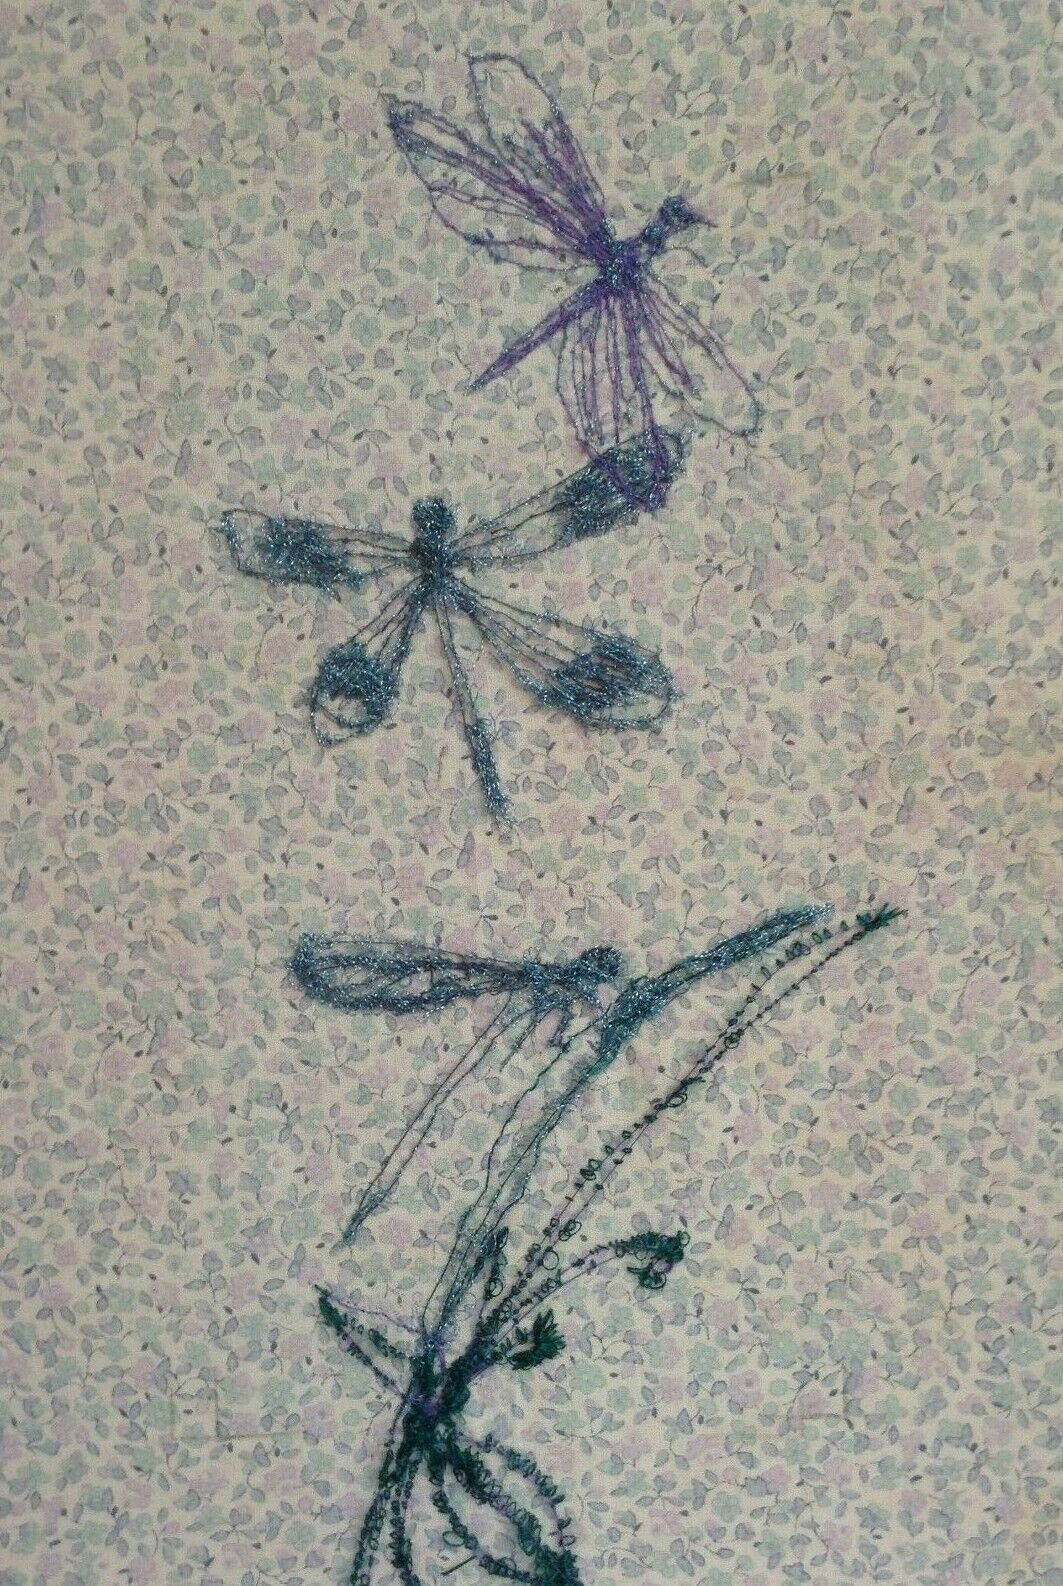 Dragonfly Embroidery Picture on Vintage floral fabric